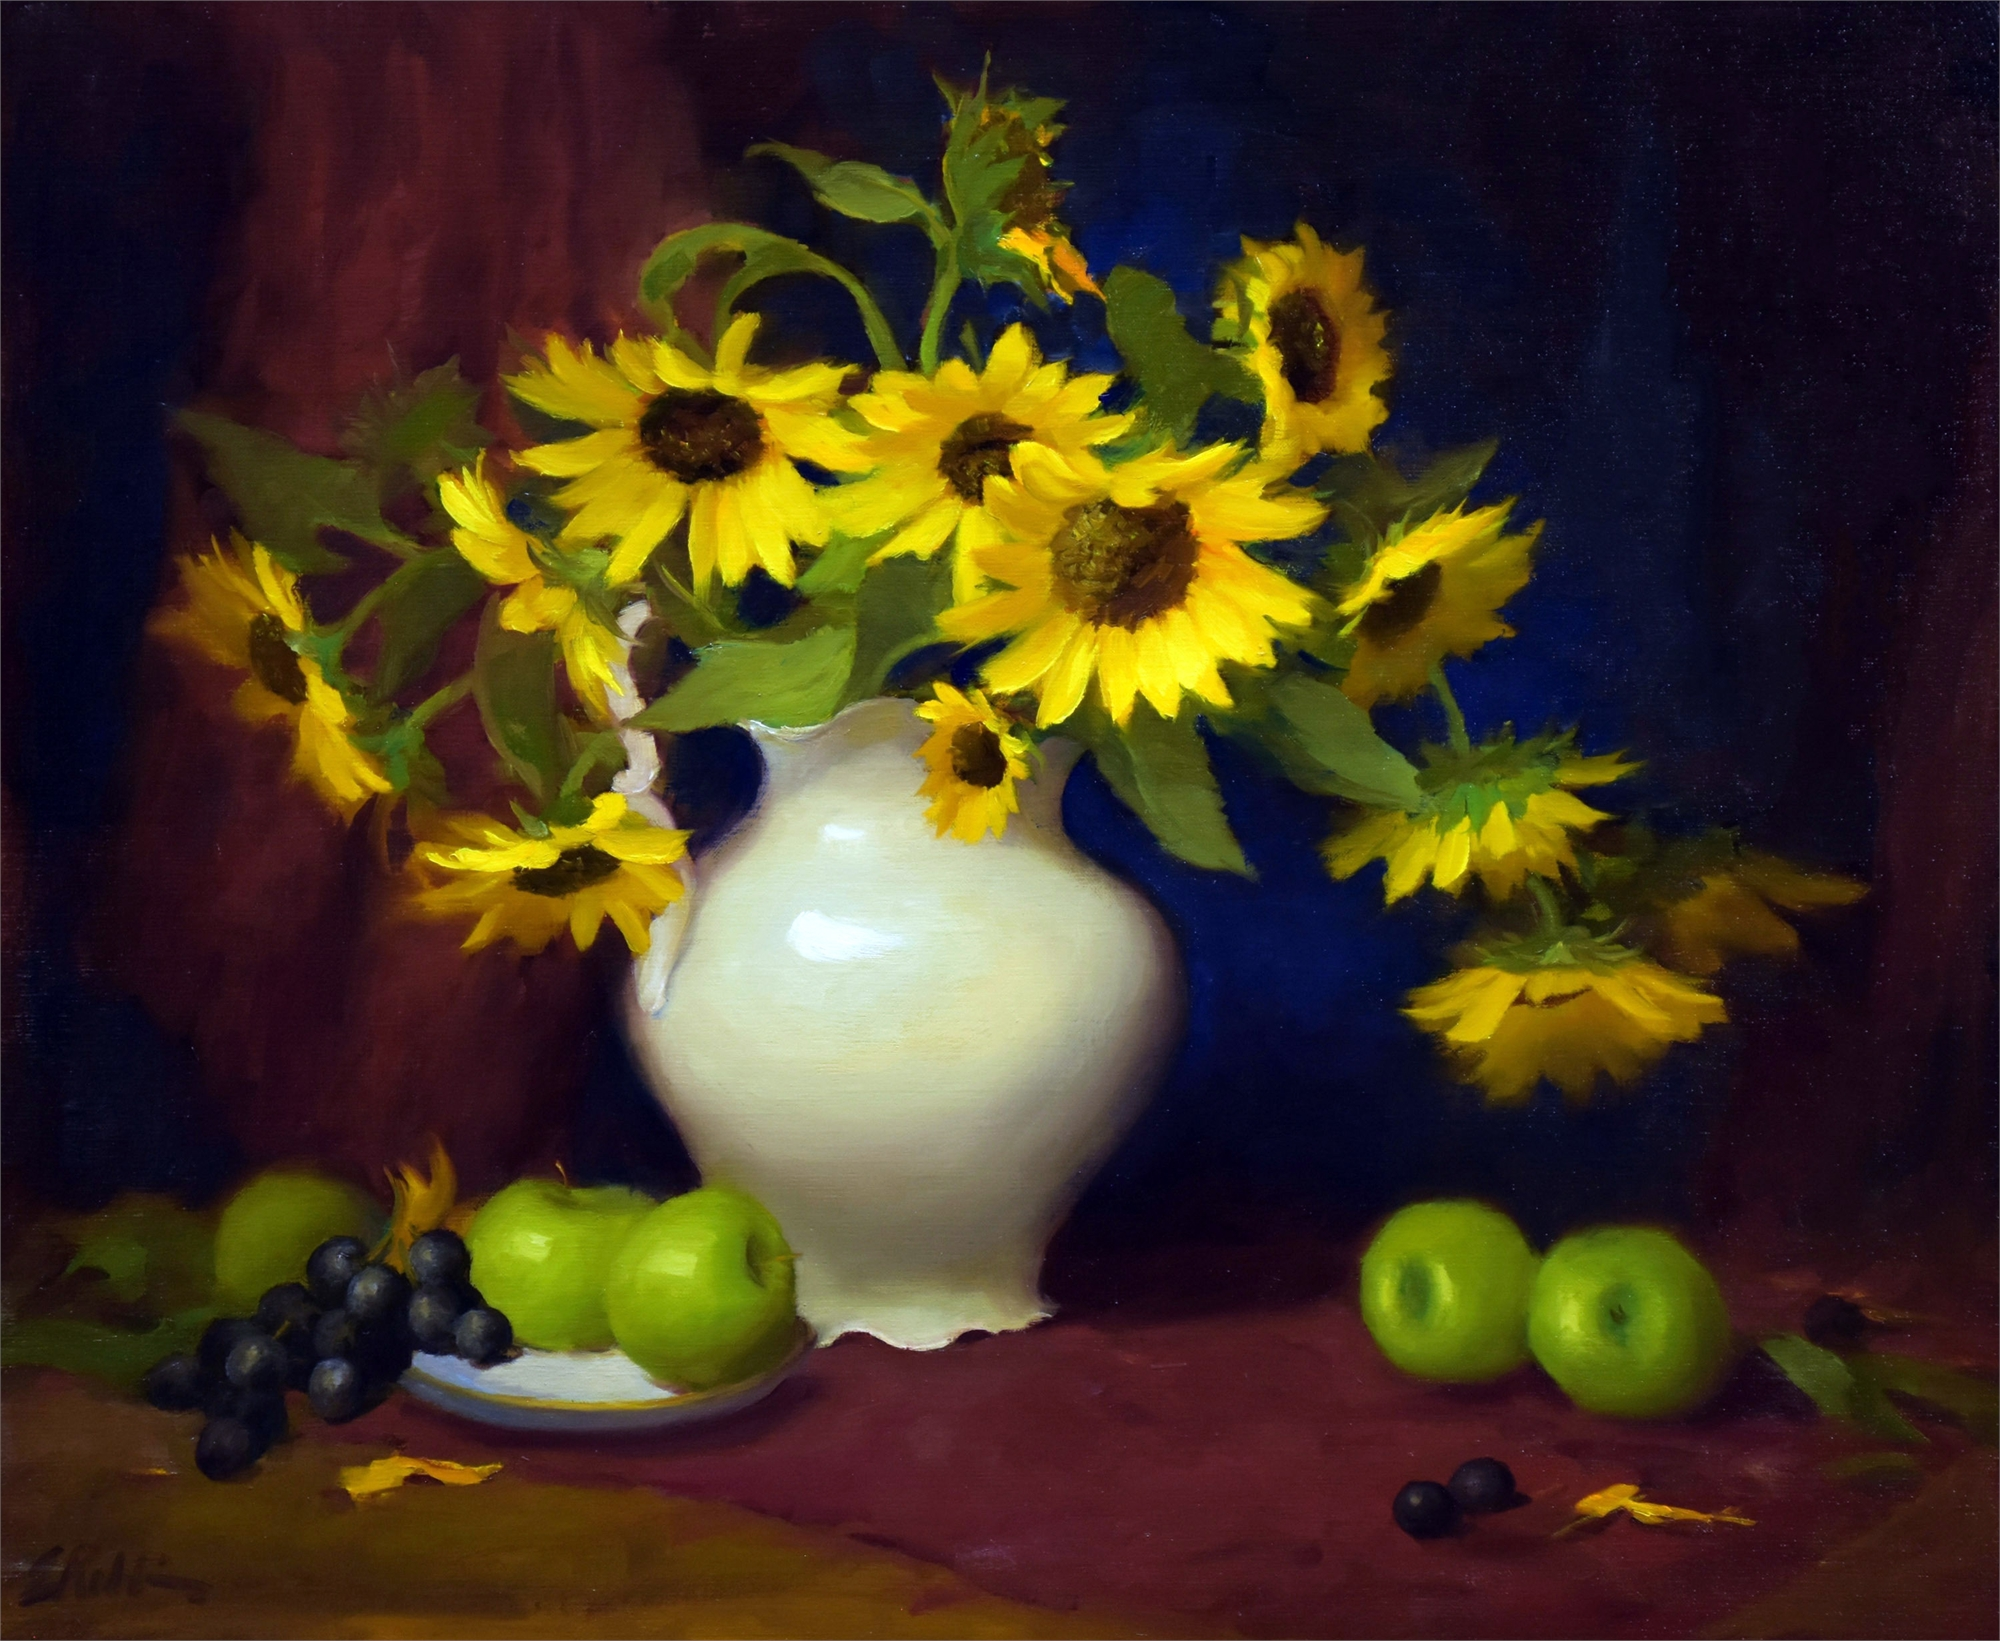 Sunflowers and Apples by Elizabeth Robbins